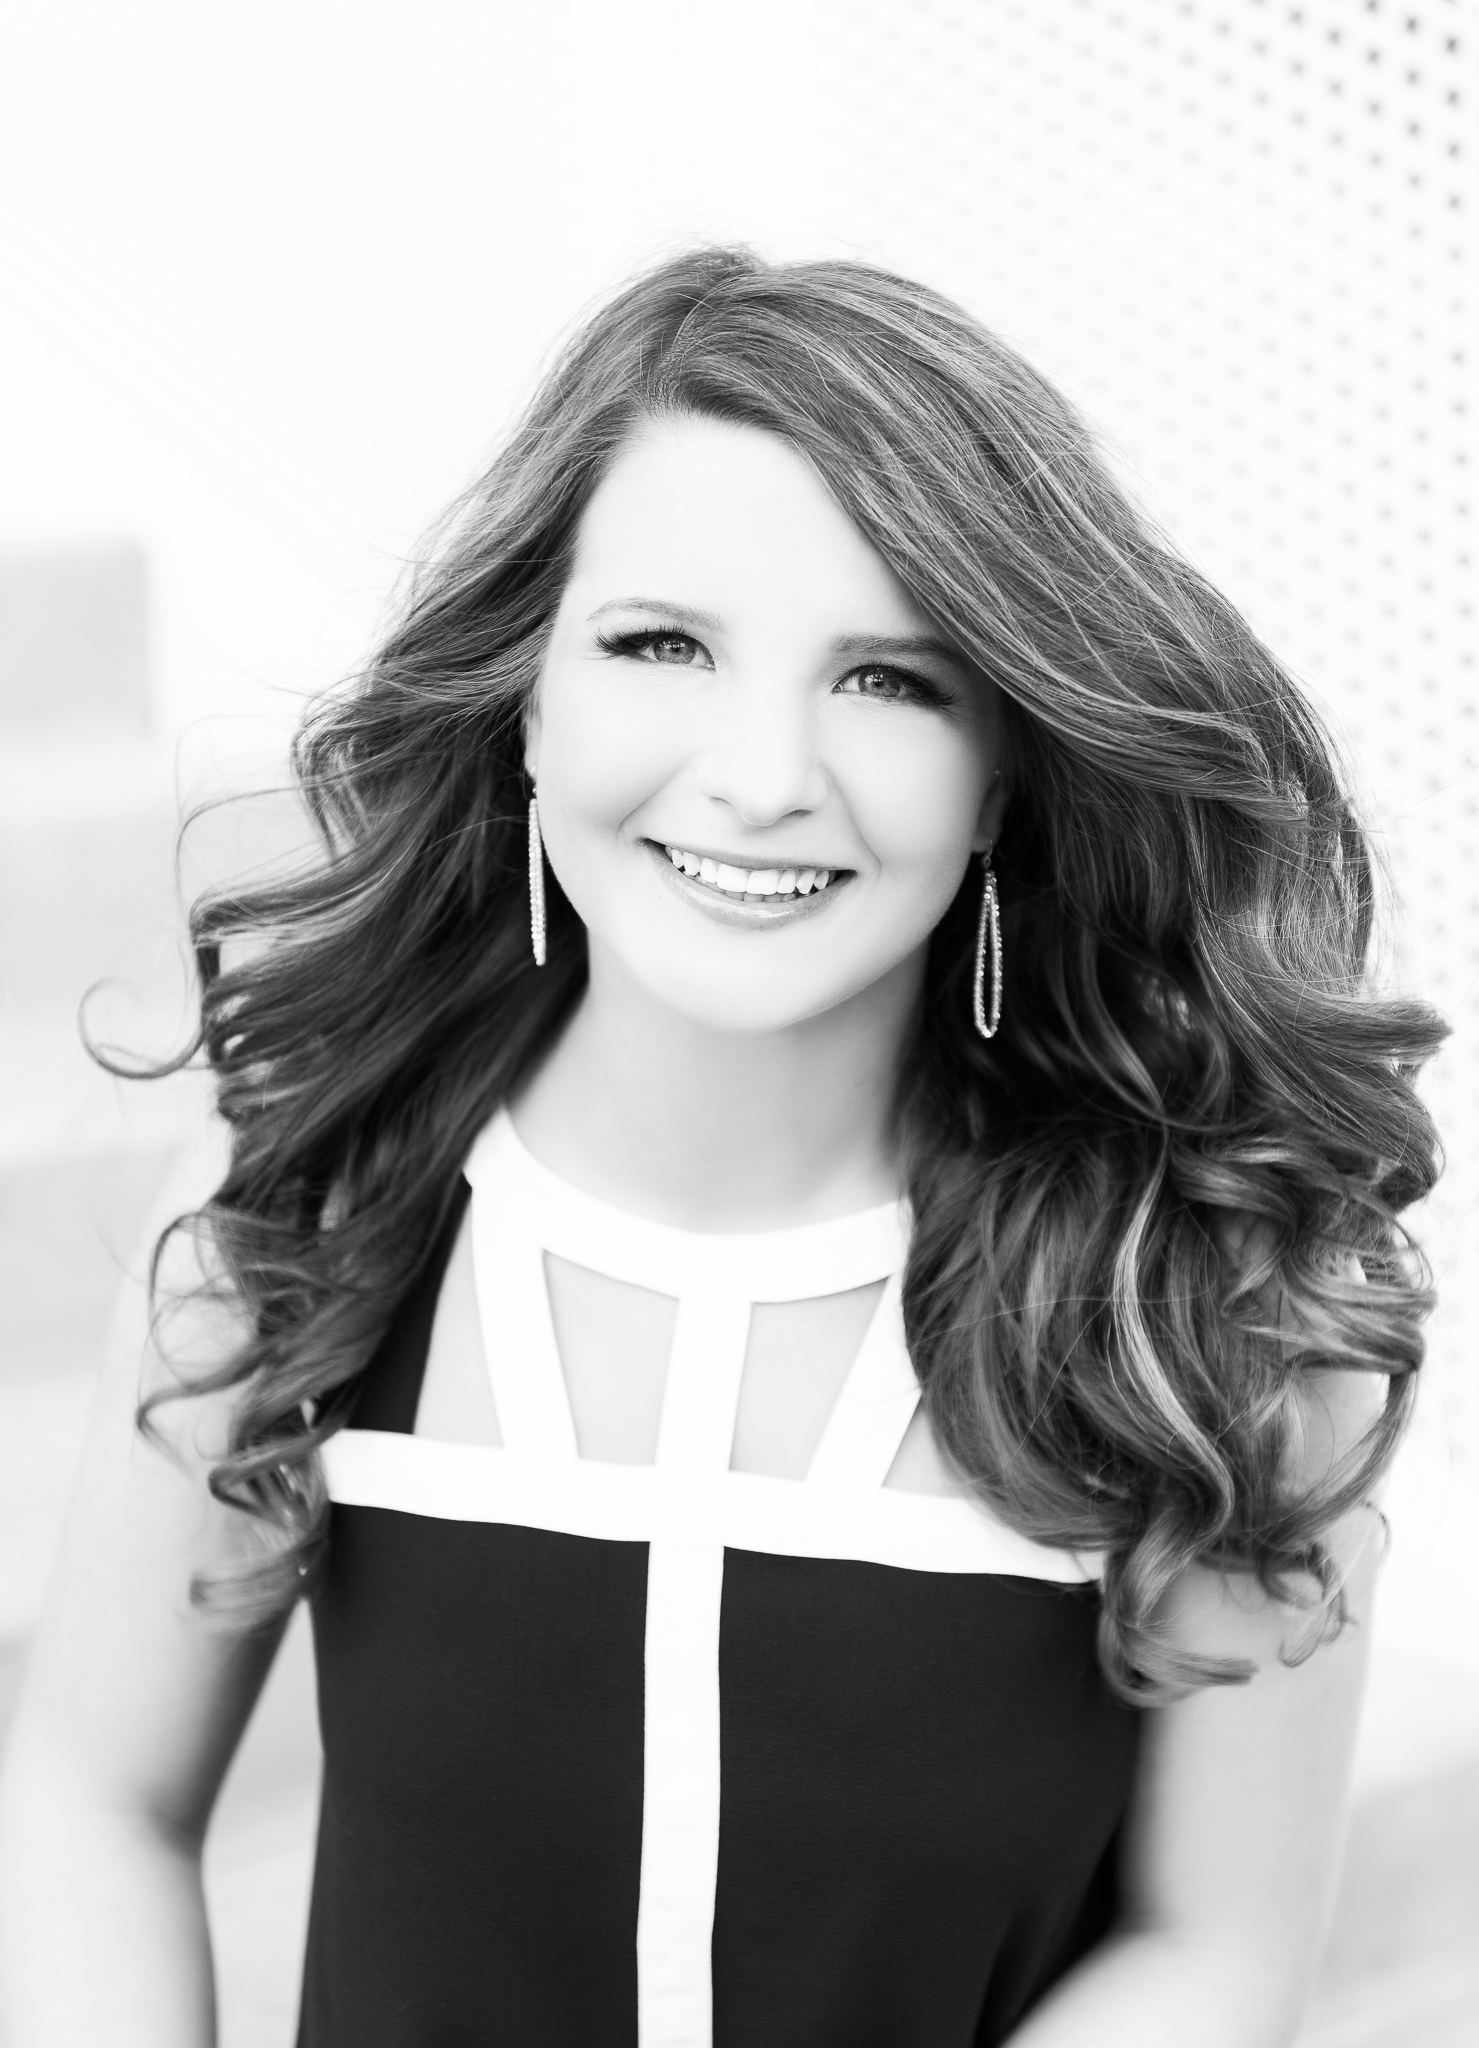 Miss Teen Hopeful Iowa City Dance-24-Edit-2